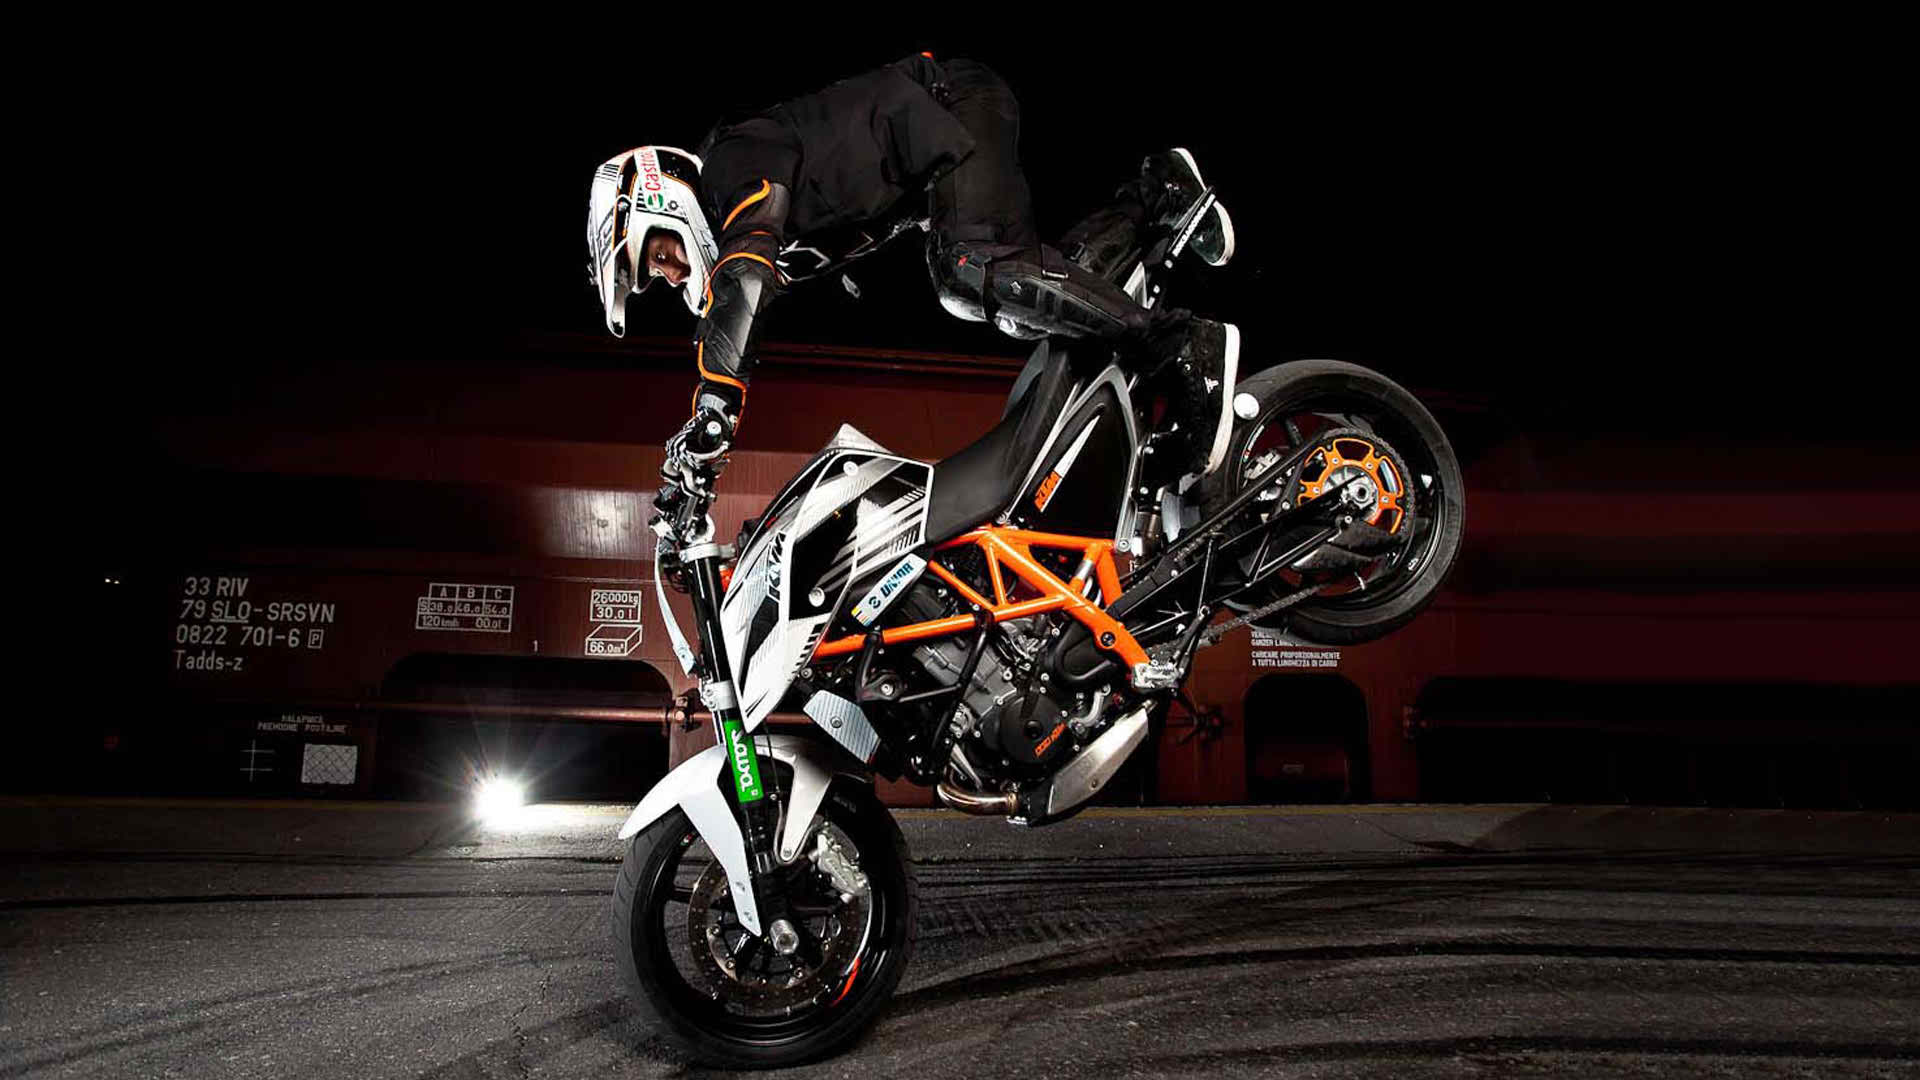 bike-stunt-full-hd-wallpapers-pic-mch046579 - dzbc